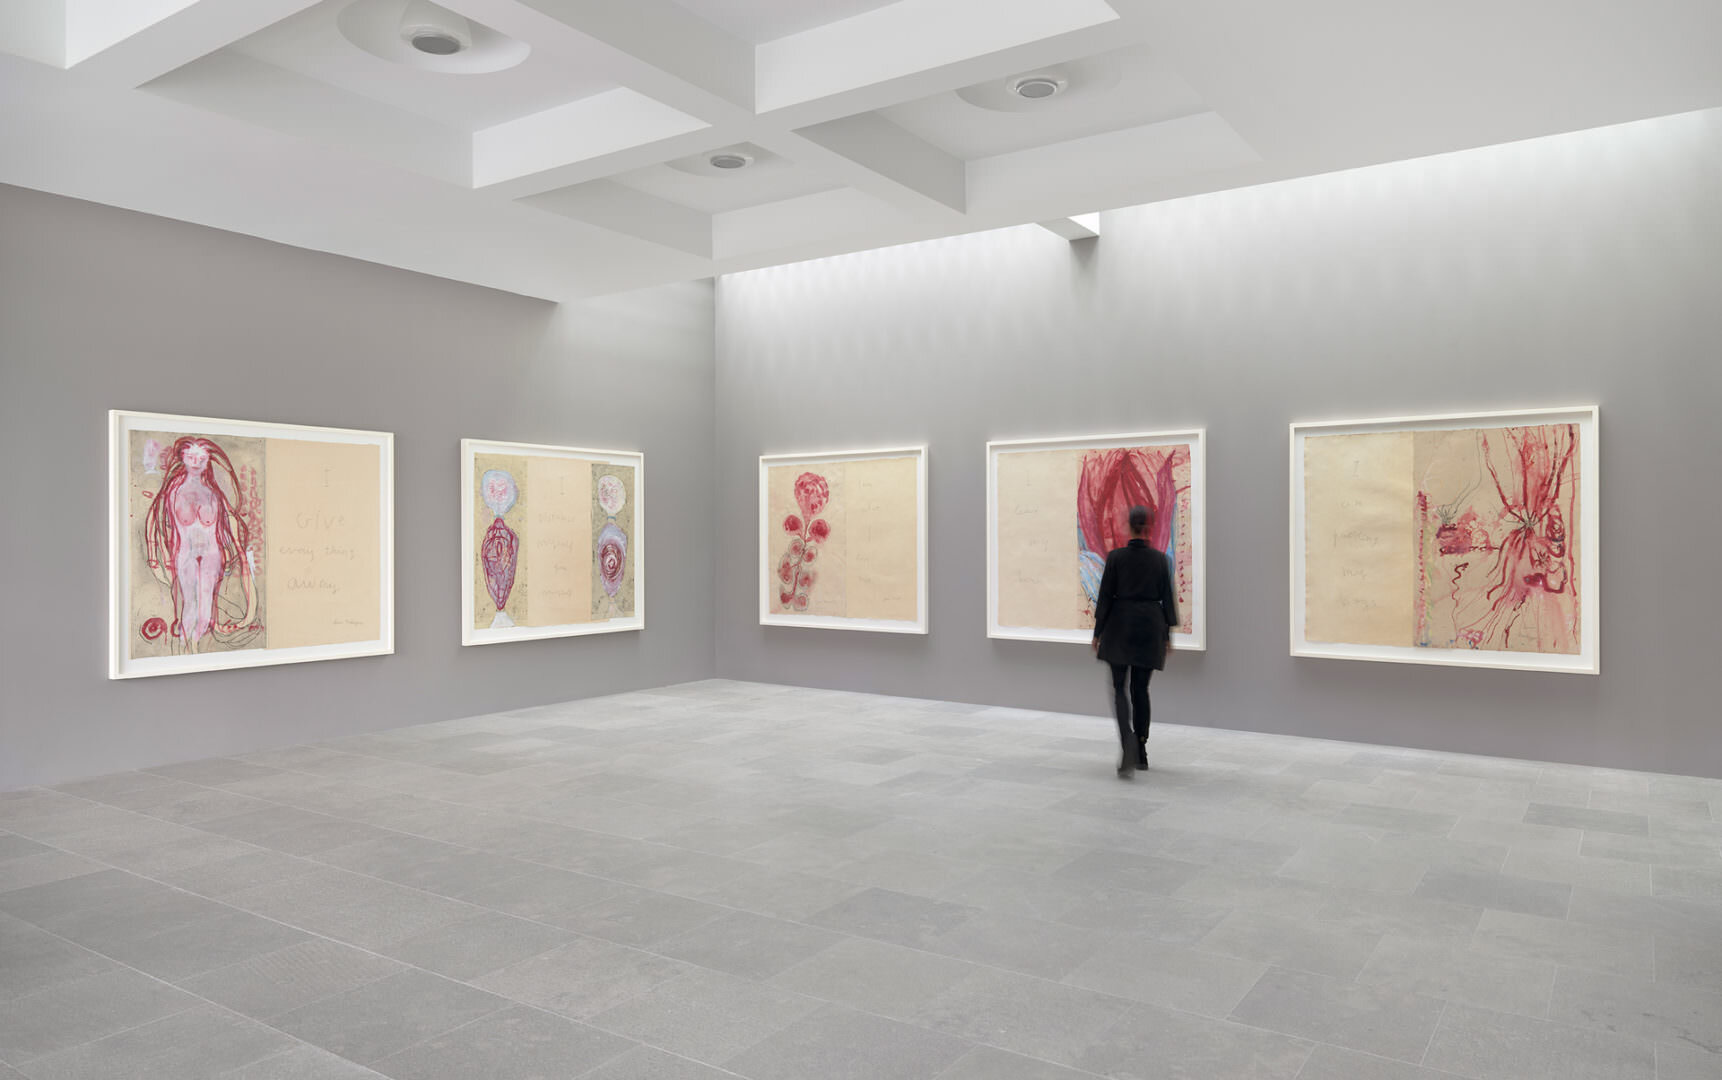 Louise Bourgeois  I Give Everything Away , 2010 etching and mixed media on paper, six panels